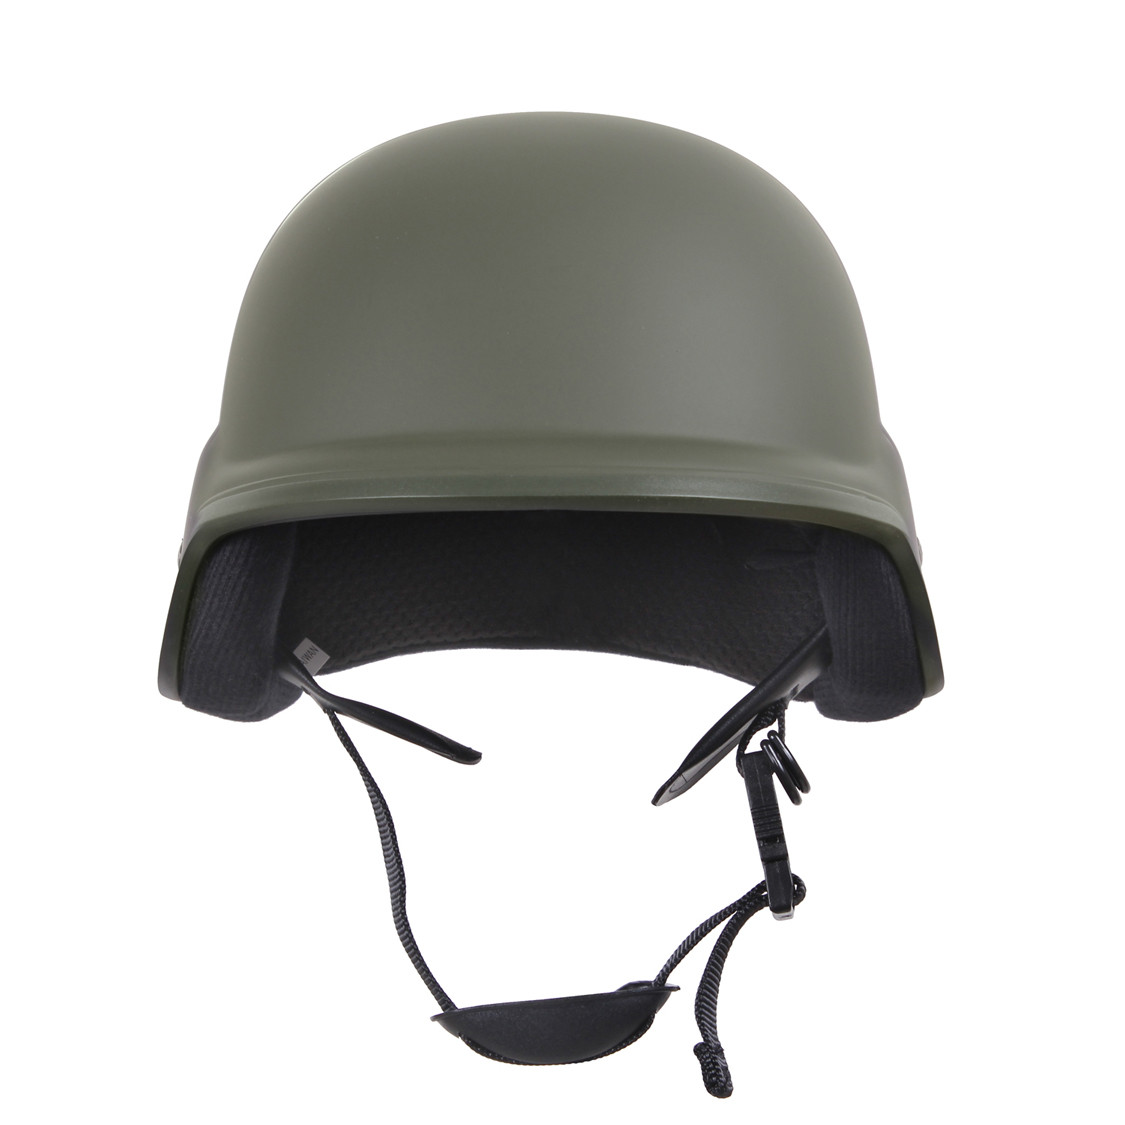 Shop Deluxe Kids Military Helmets